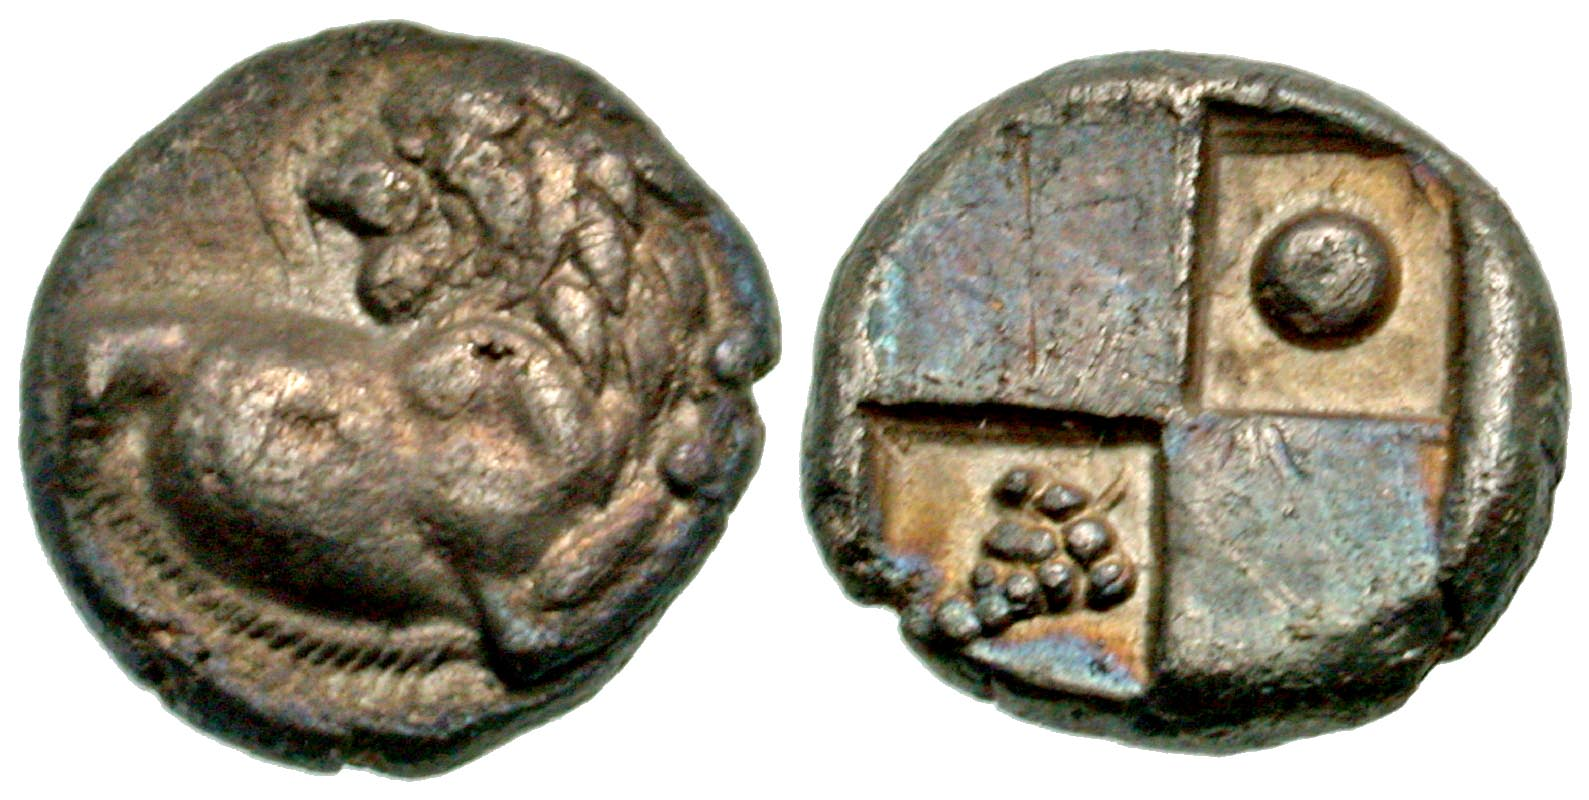 Thrace, Thracian Chersonese. Cherronesos. civic issue. 400-350 B.C. AR  hemidrachm. From the Tom Buggey Collection.